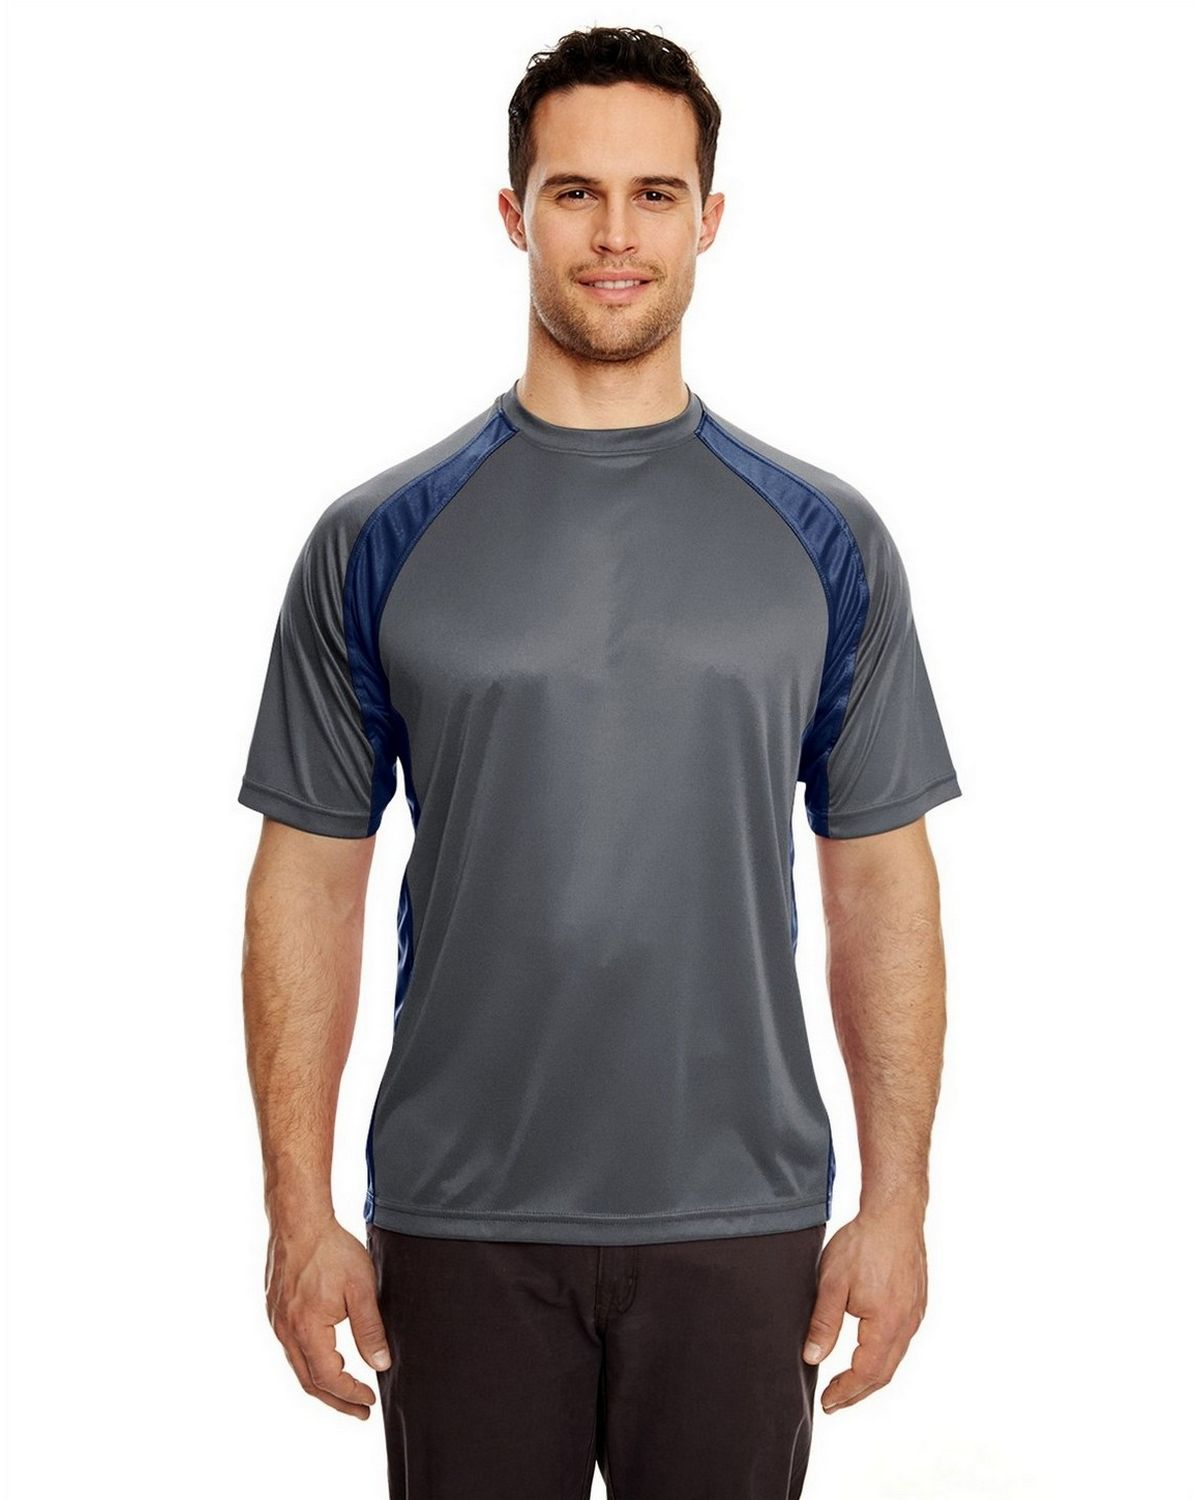 Ultraclub 8421 Sport Two Tone Performance Tee - Charcoal/Navy - L 8421